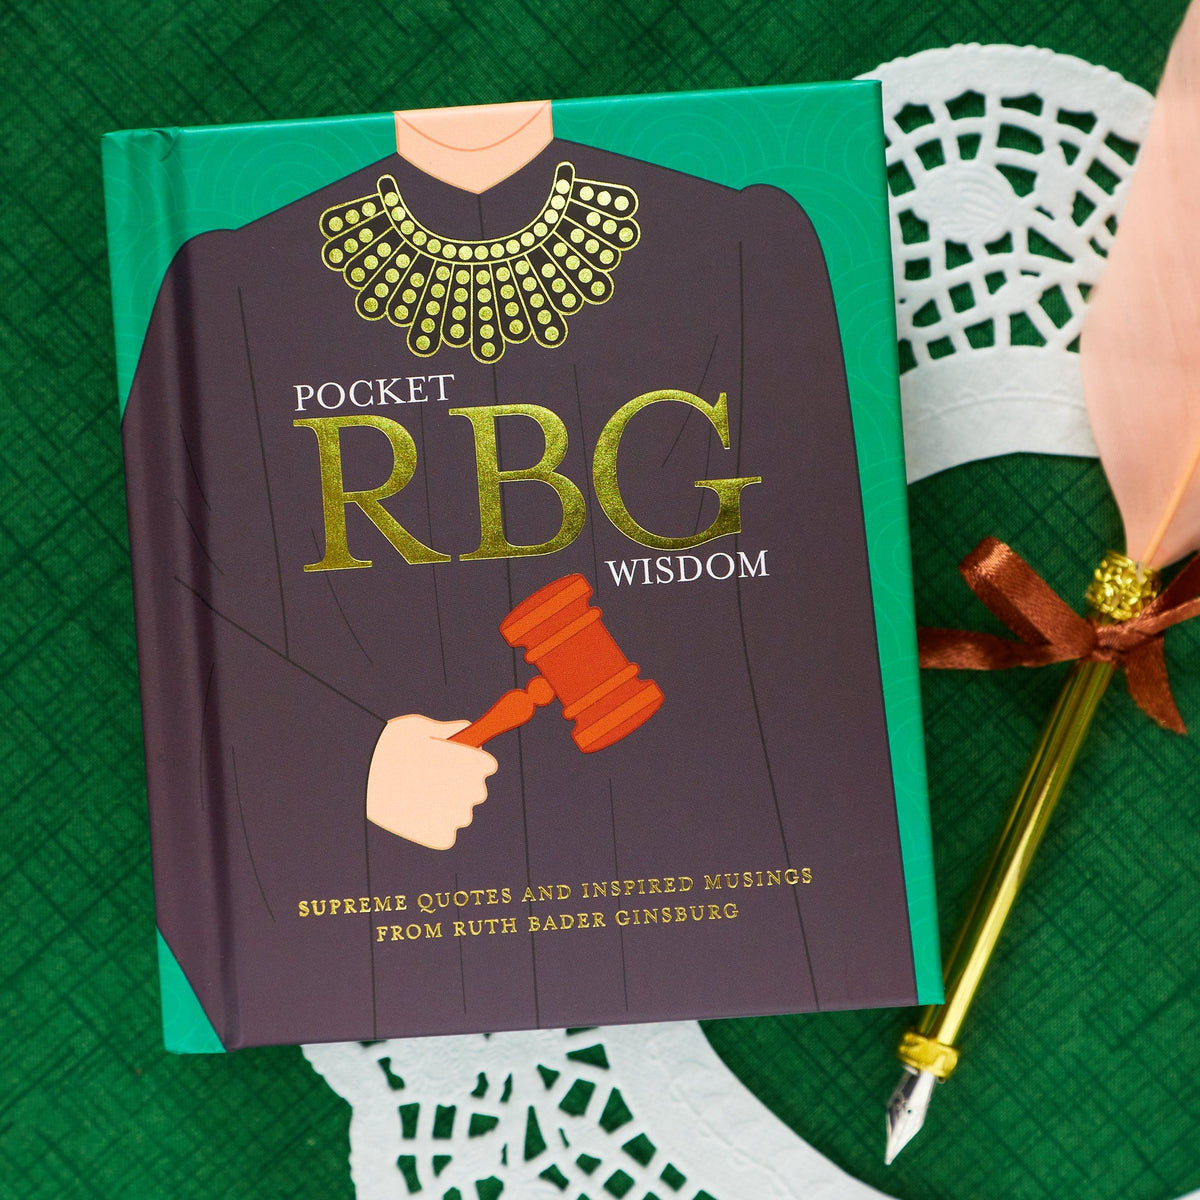 Pocket RBG Wisdom - Supreme Quotes and Inspired Musings